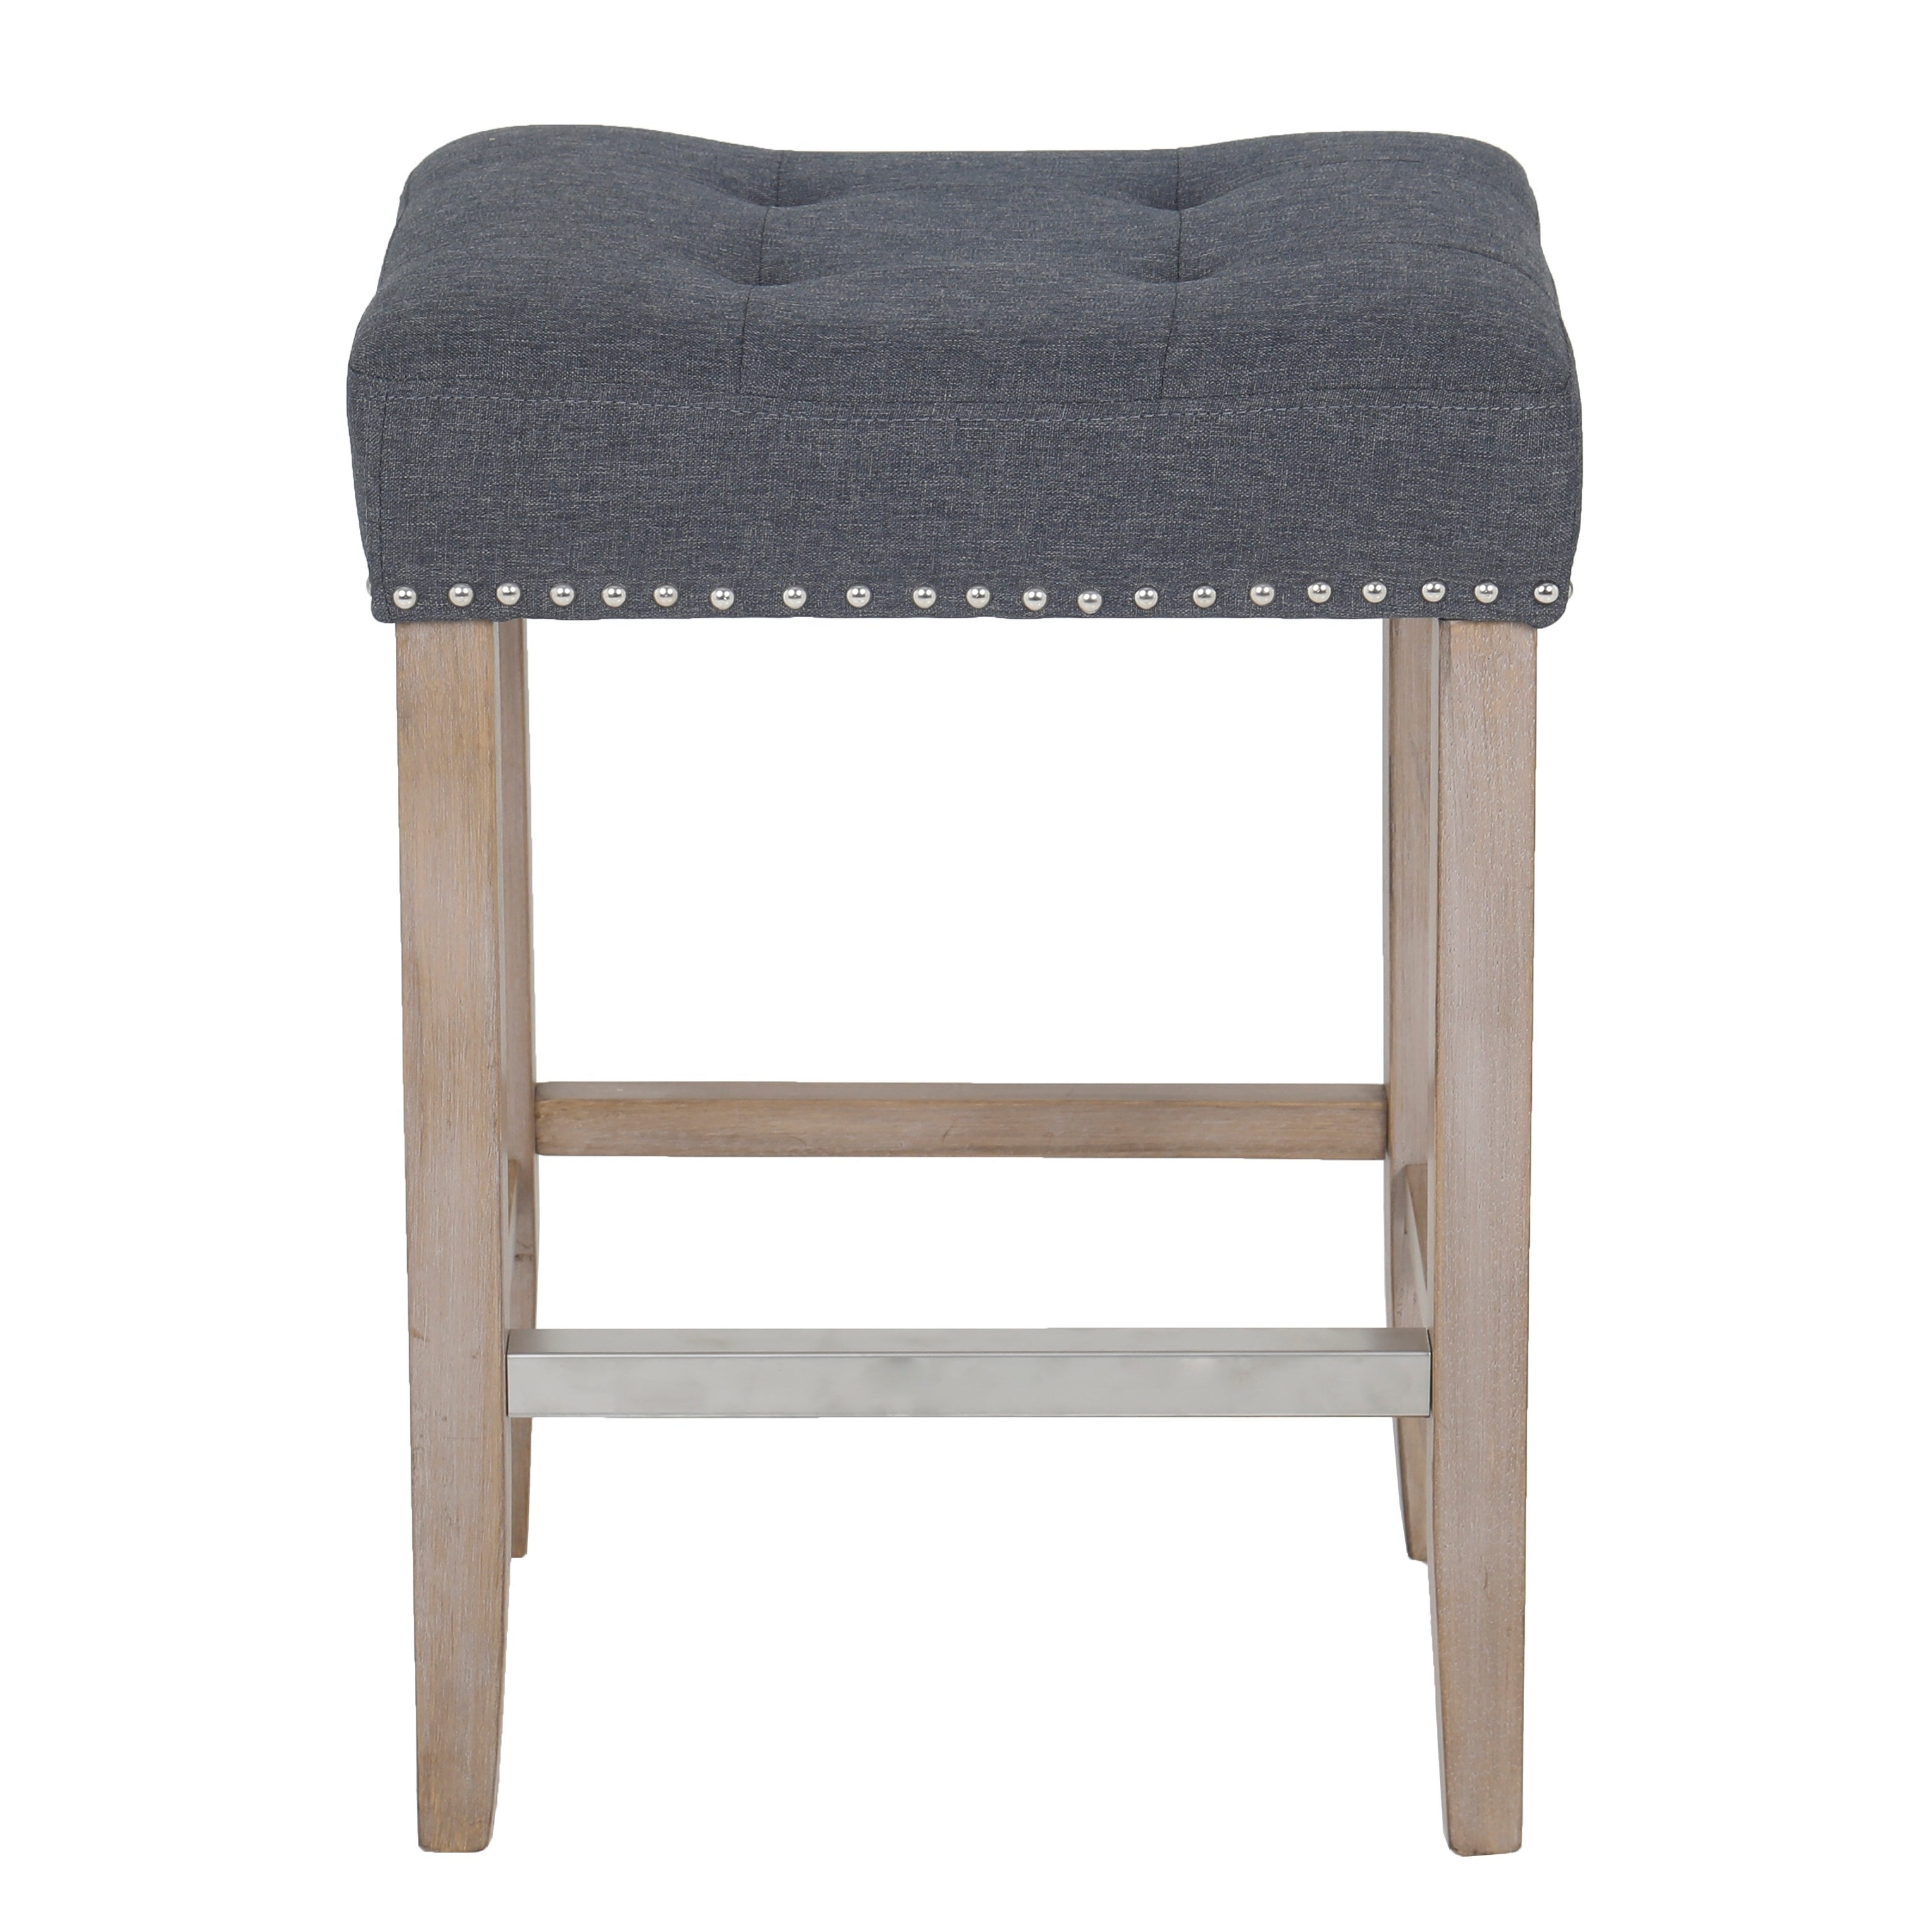 Super Quail Wooden Linen Tufted Counter 27 Bar Stool Accent Nail Trim Barstool Set Of 2 Caraccident5 Cool Chair Designs And Ideas Caraccident5Info